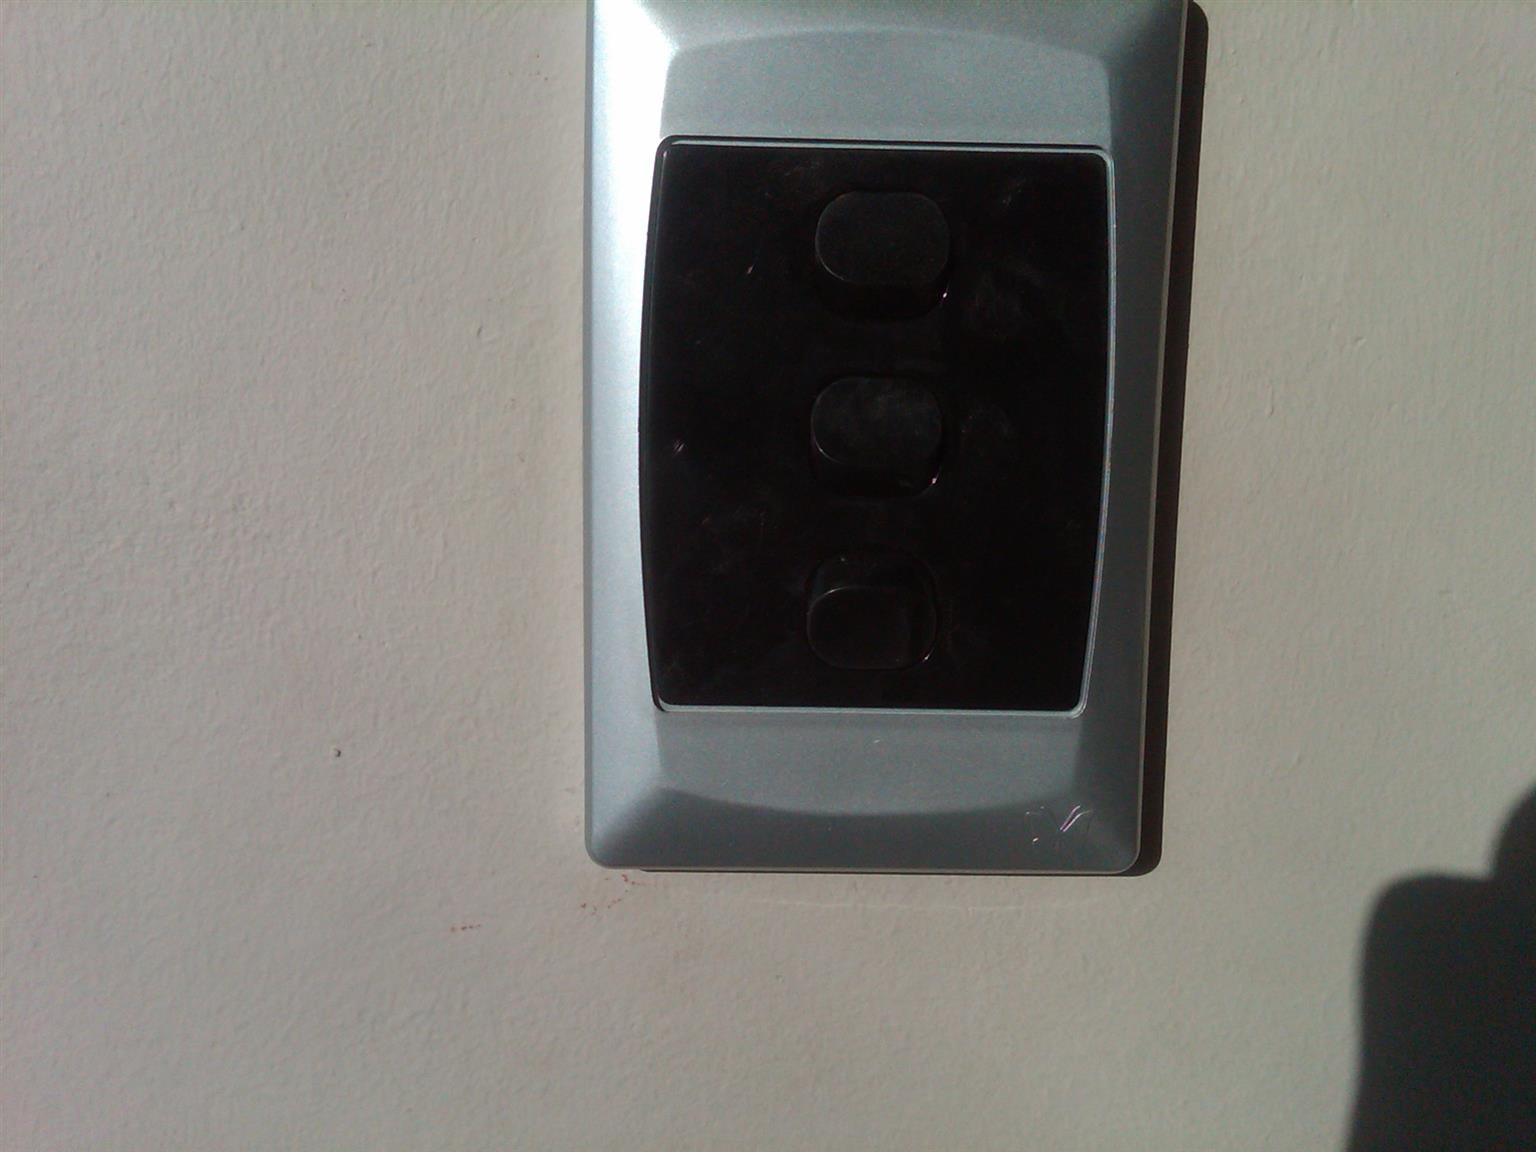 Pretoria east electricians db earthleakage tripping specialist 0723328082